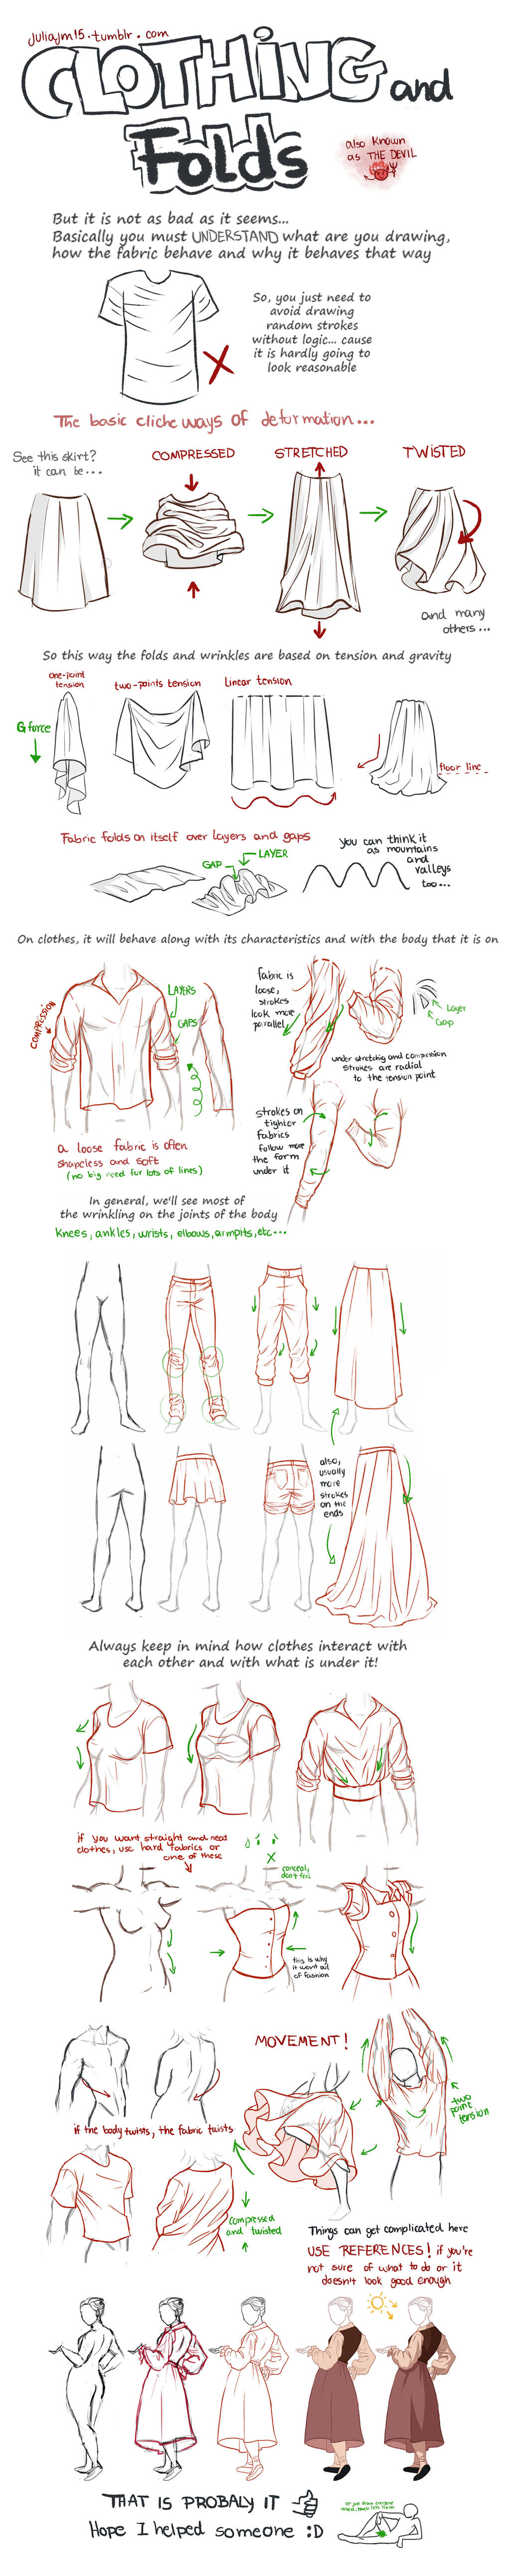 Clothing and Folds Tutorial by juliajm15